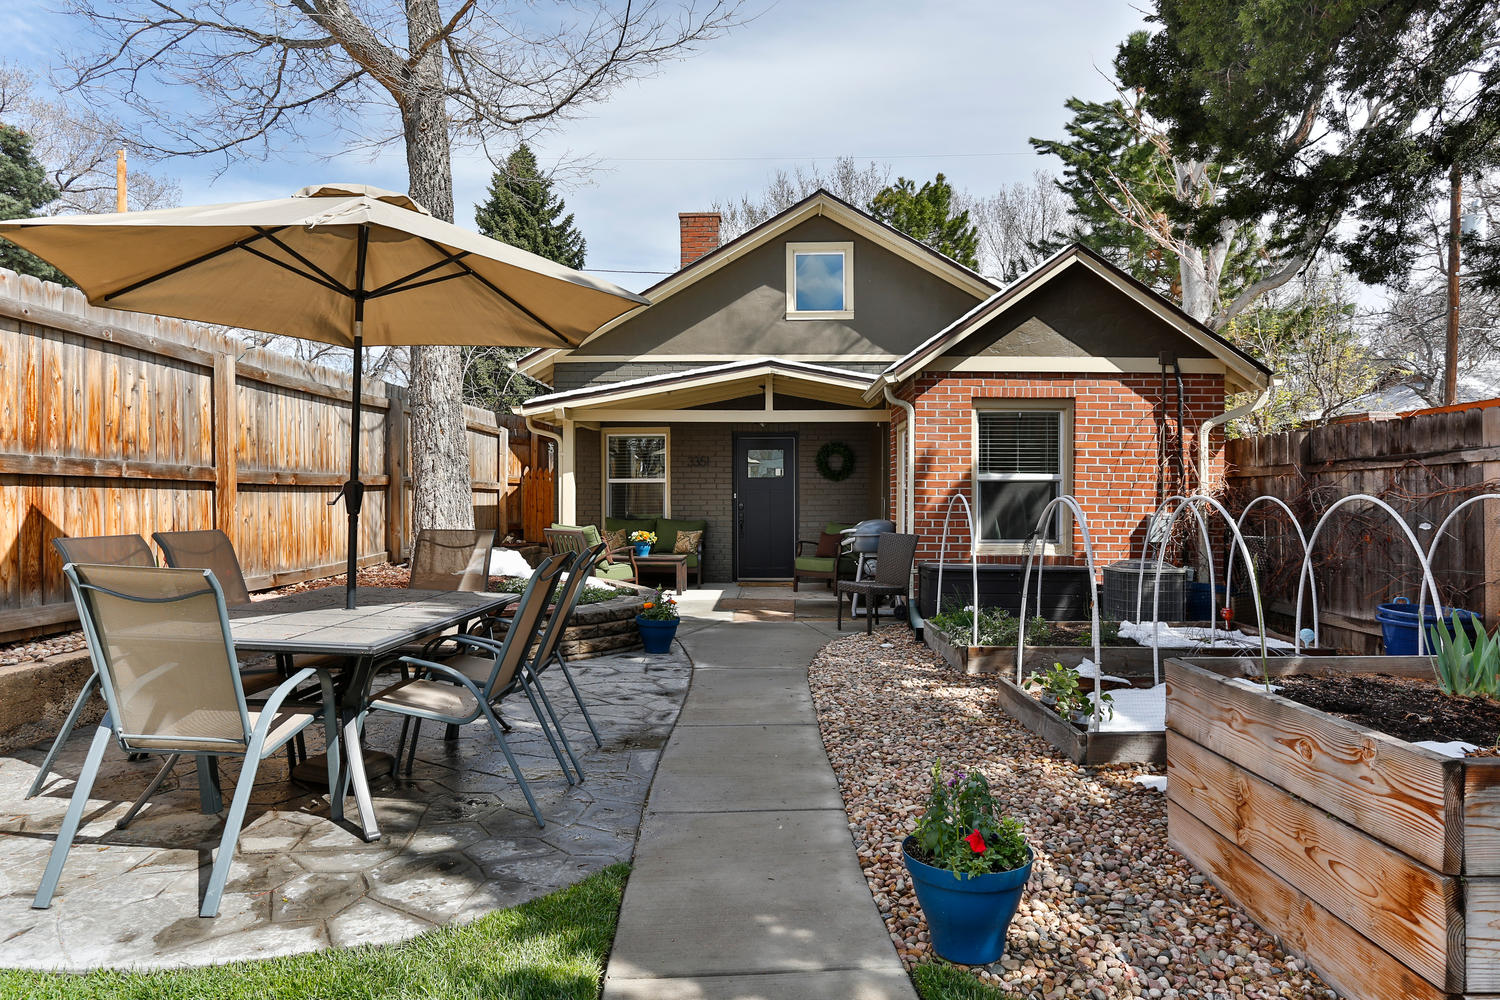 Single Family Home for Sale at Gorgeous renovated Bungalow with old charm and all of the modern updates! 3351 West Moncrieff Place Denver, Colorado, 80211 United States